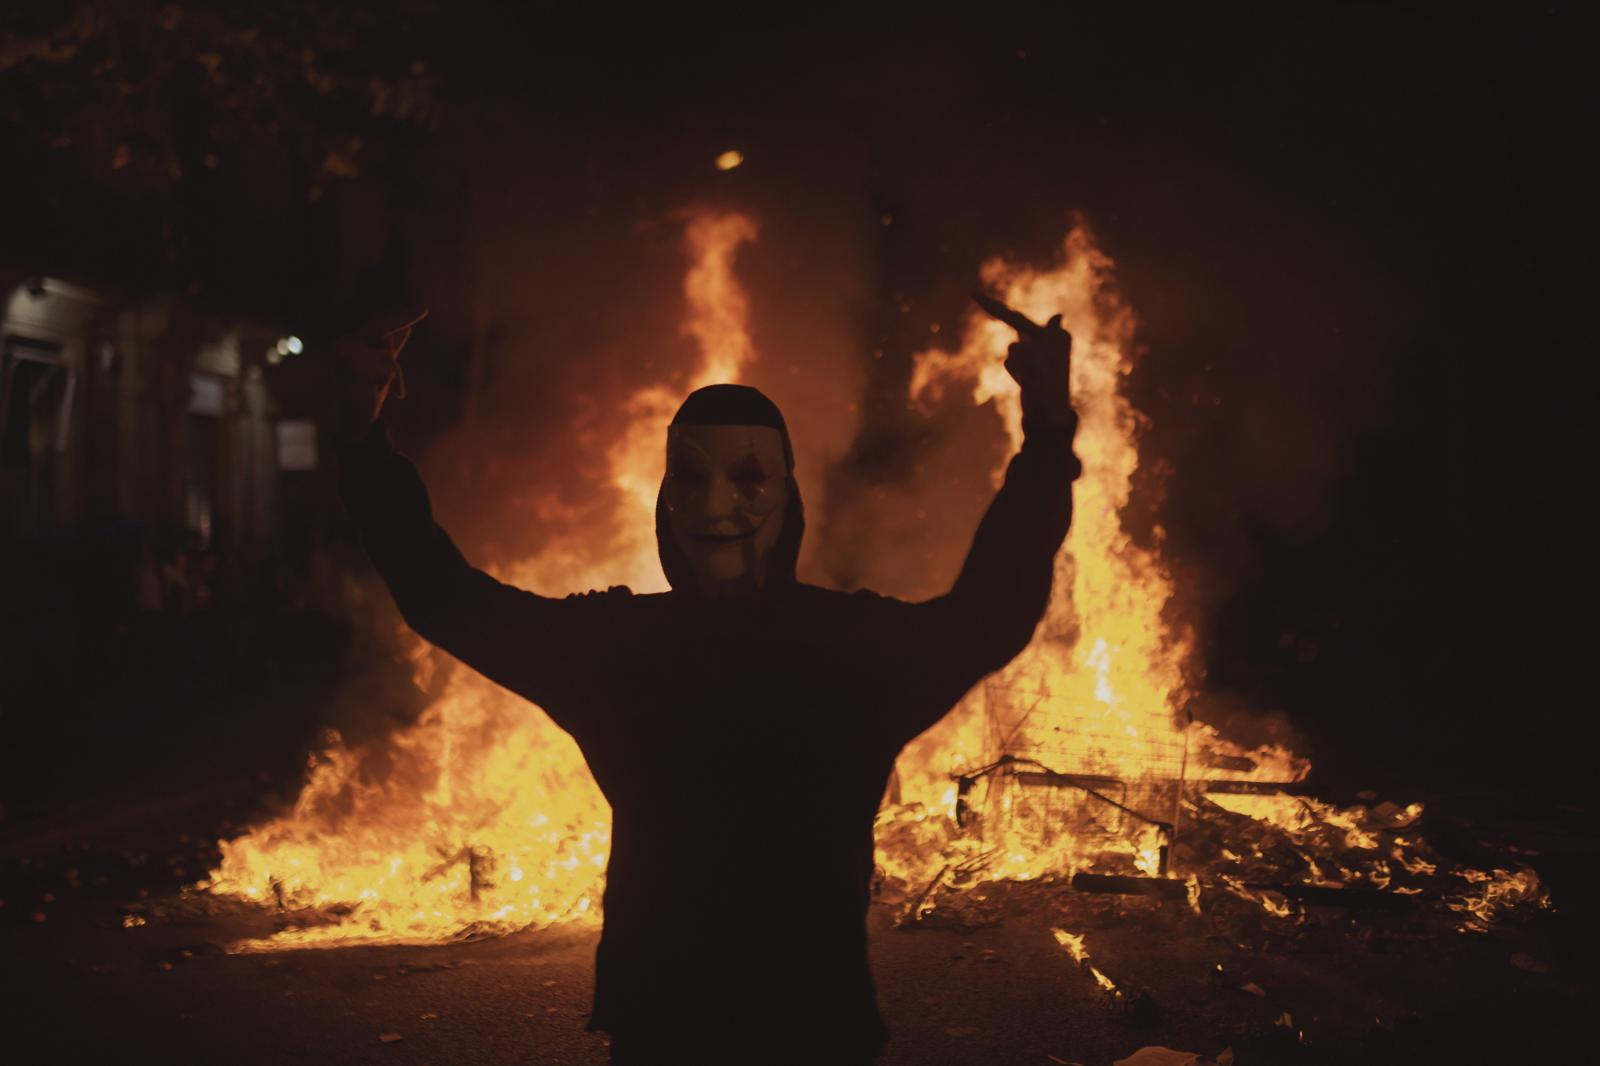 A youth shows his middle finger as a barricade burns behind him. Before the arrival of firefighters, the neighbors have taken fire extinguishers from the corridors of their building to try to put out the flames. The economic sector shows its concern about the impact on business activity and asks for dialogue to resolve the conflict. In their Twitter account, the police (Mossos) have explained that people are barricading in different streets of Barcelona and asked the citizens not to approach the red areas. They have also reported that protesters have made at least five pyrotechnic launches against the helicopter that flies over Barcelona to help control the protest. (October 17,2019. Barcelona, Spain)